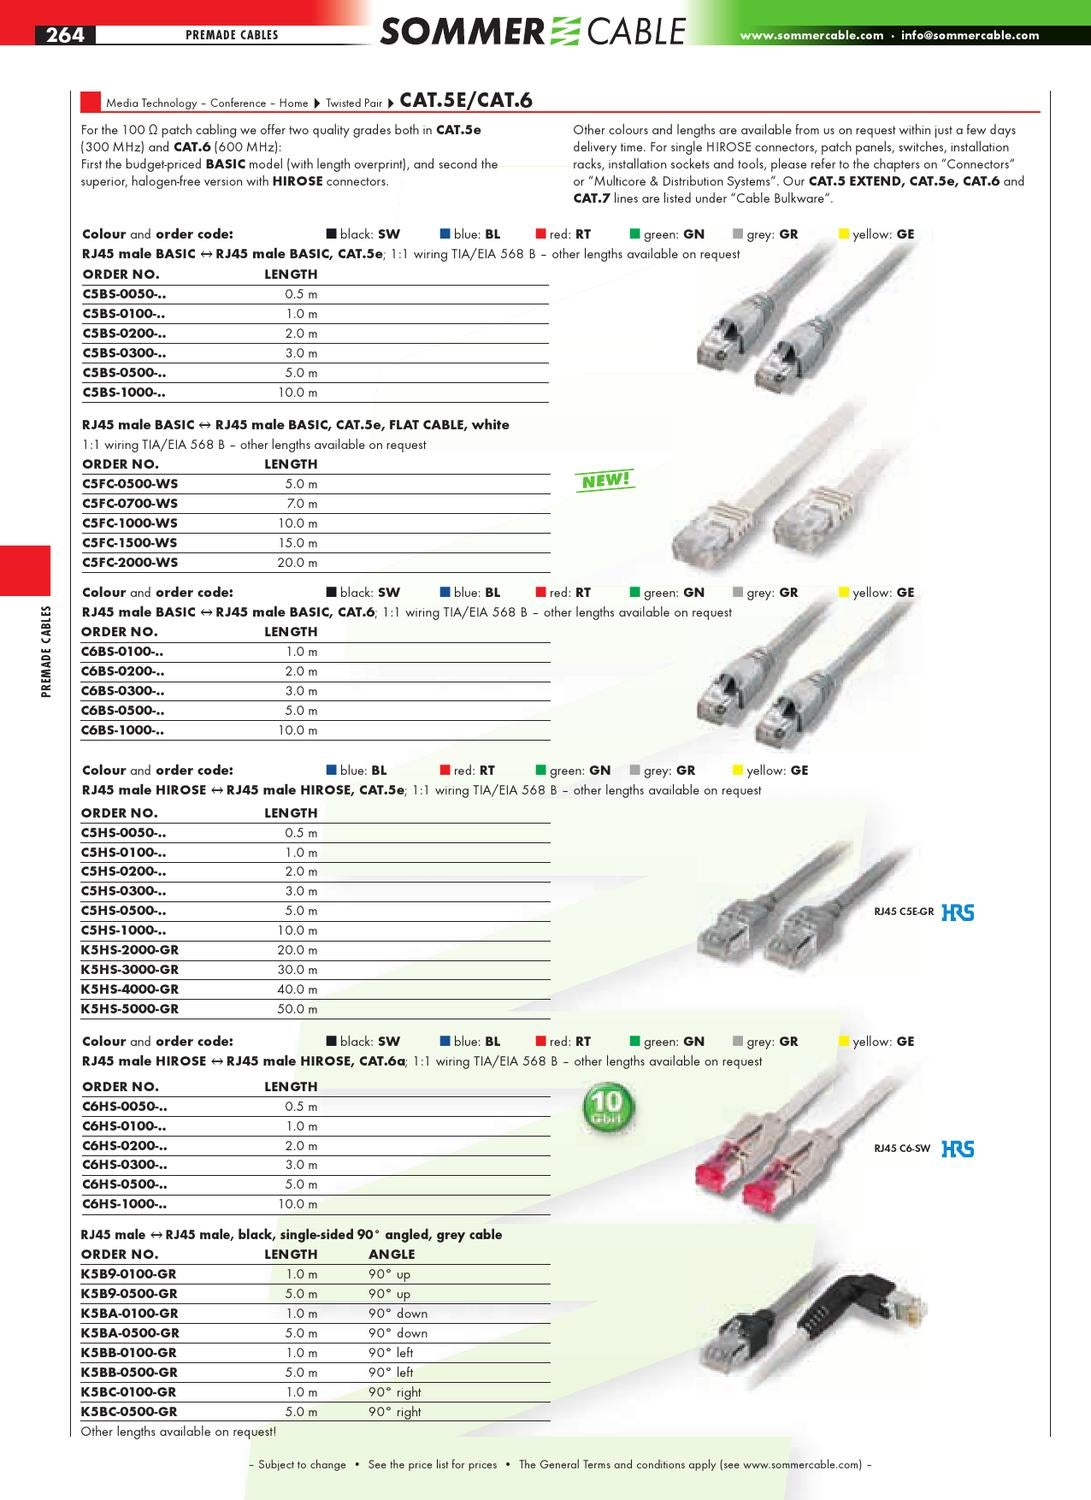 hight resolution of sommer cable catalog deel 2 plug connectors premade cables sale displays